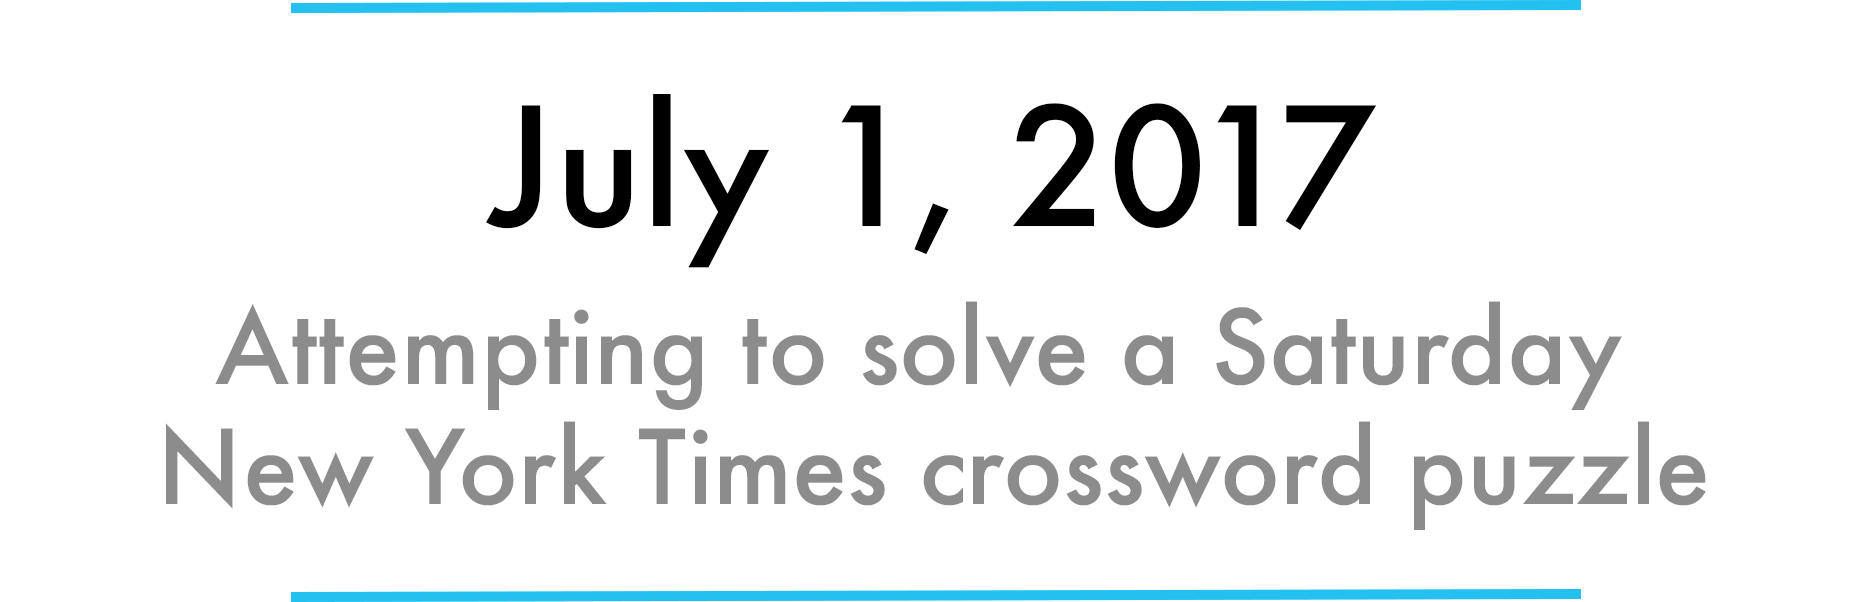 Italian crossword puzzles that you can download for free or solve online: a selection of sites